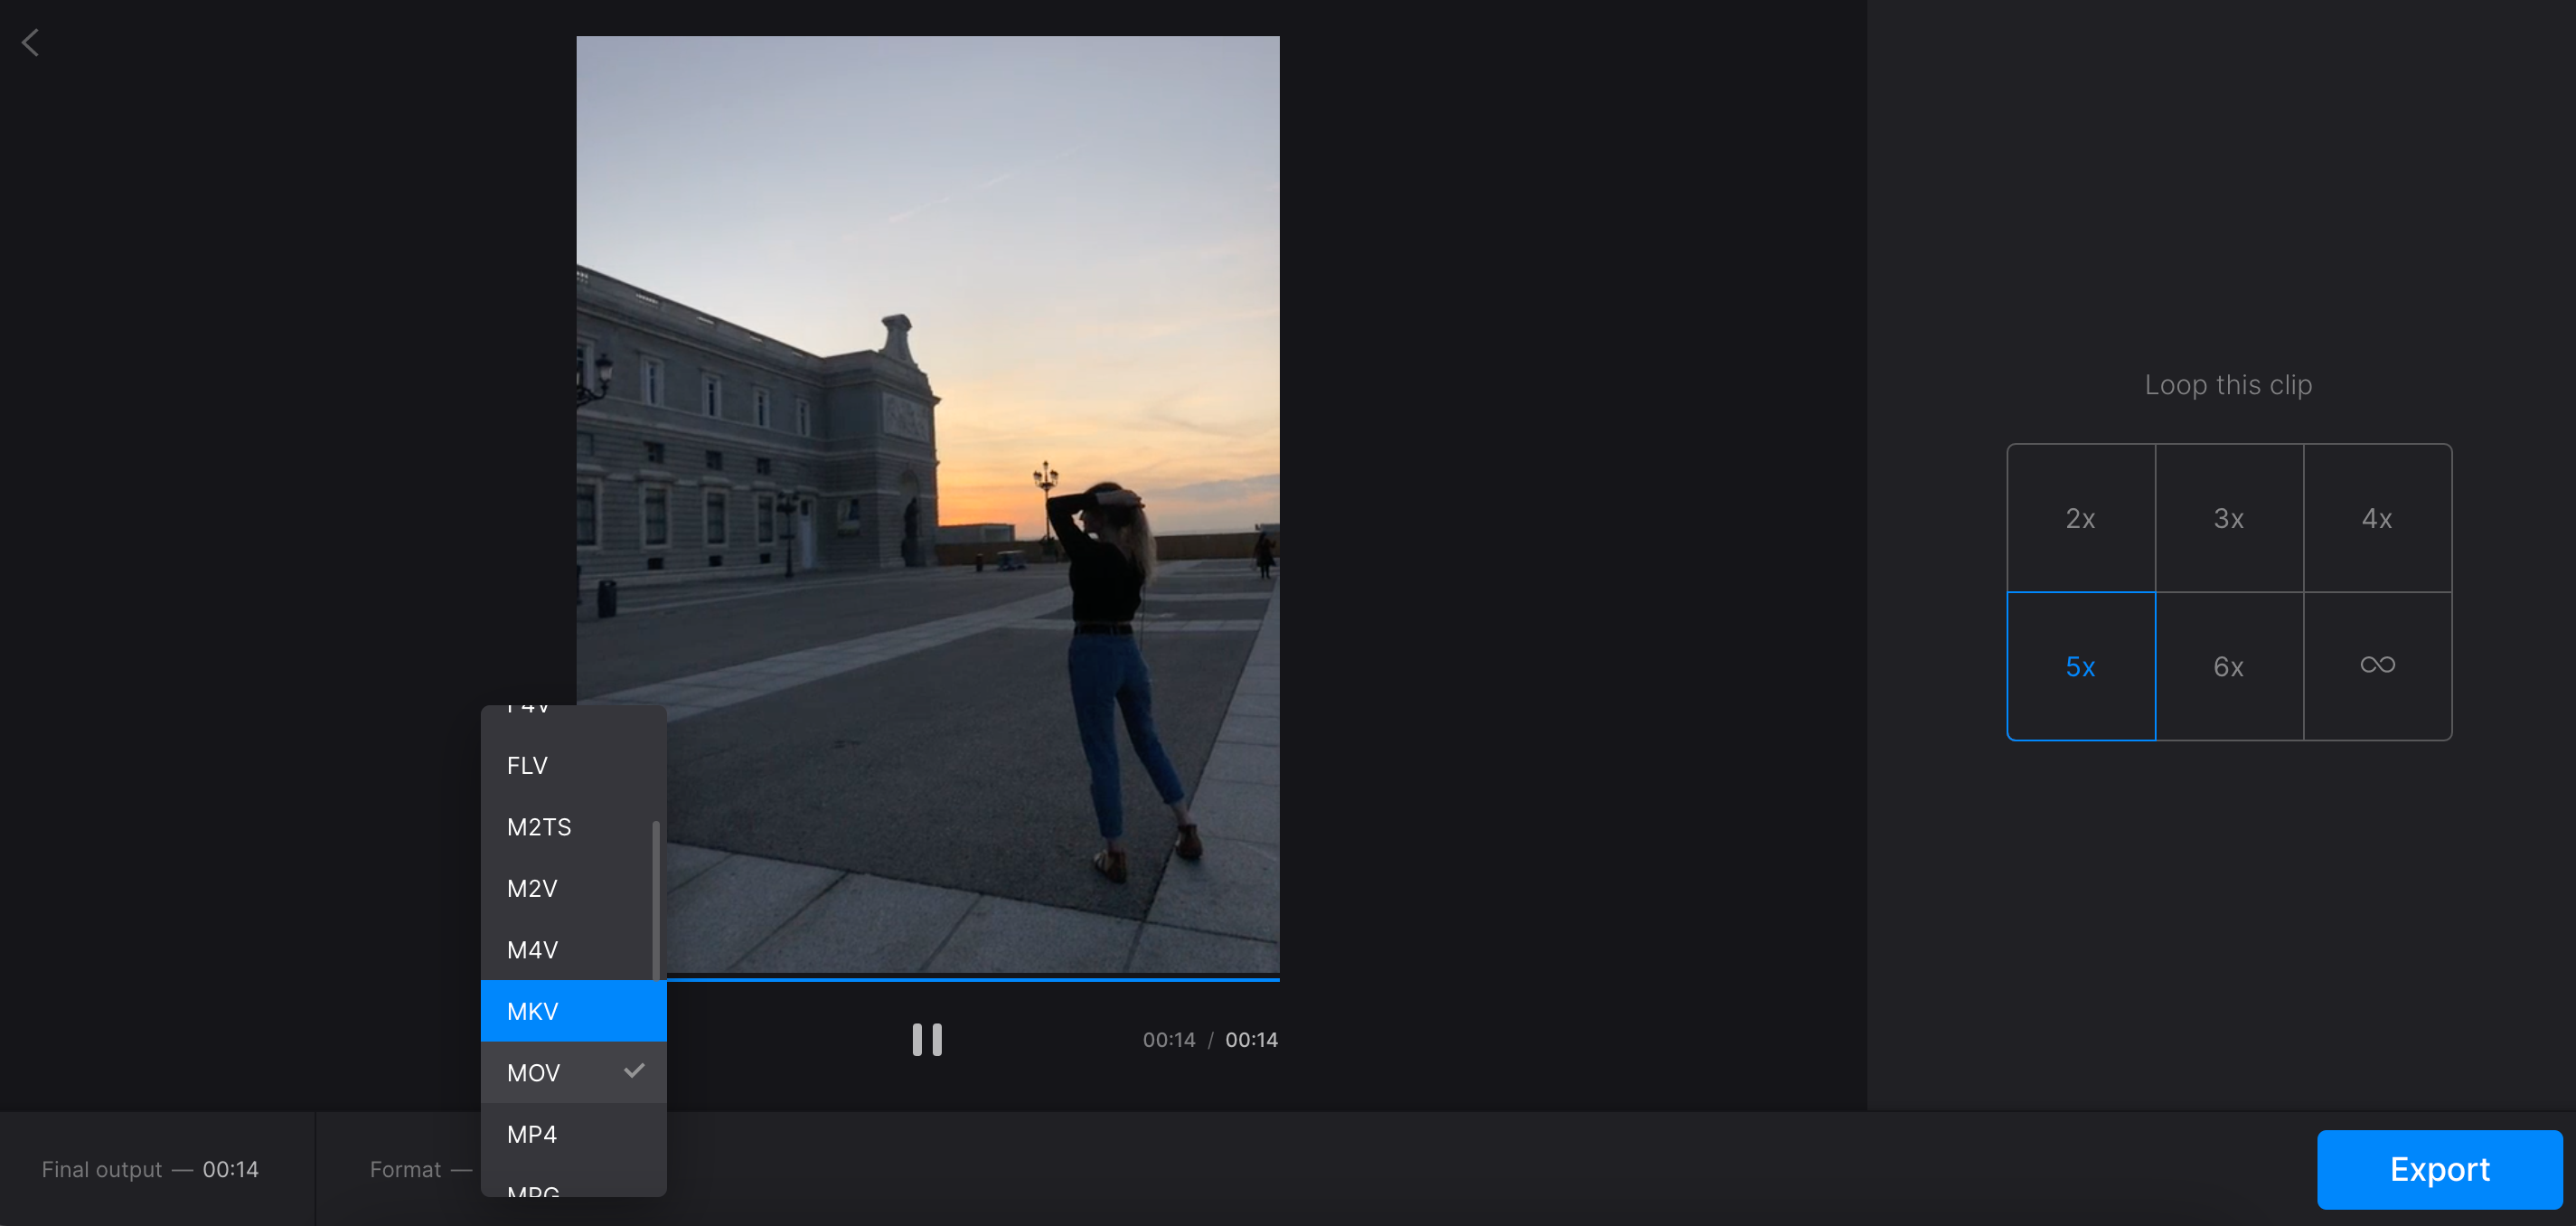 Convert video to not GIF format